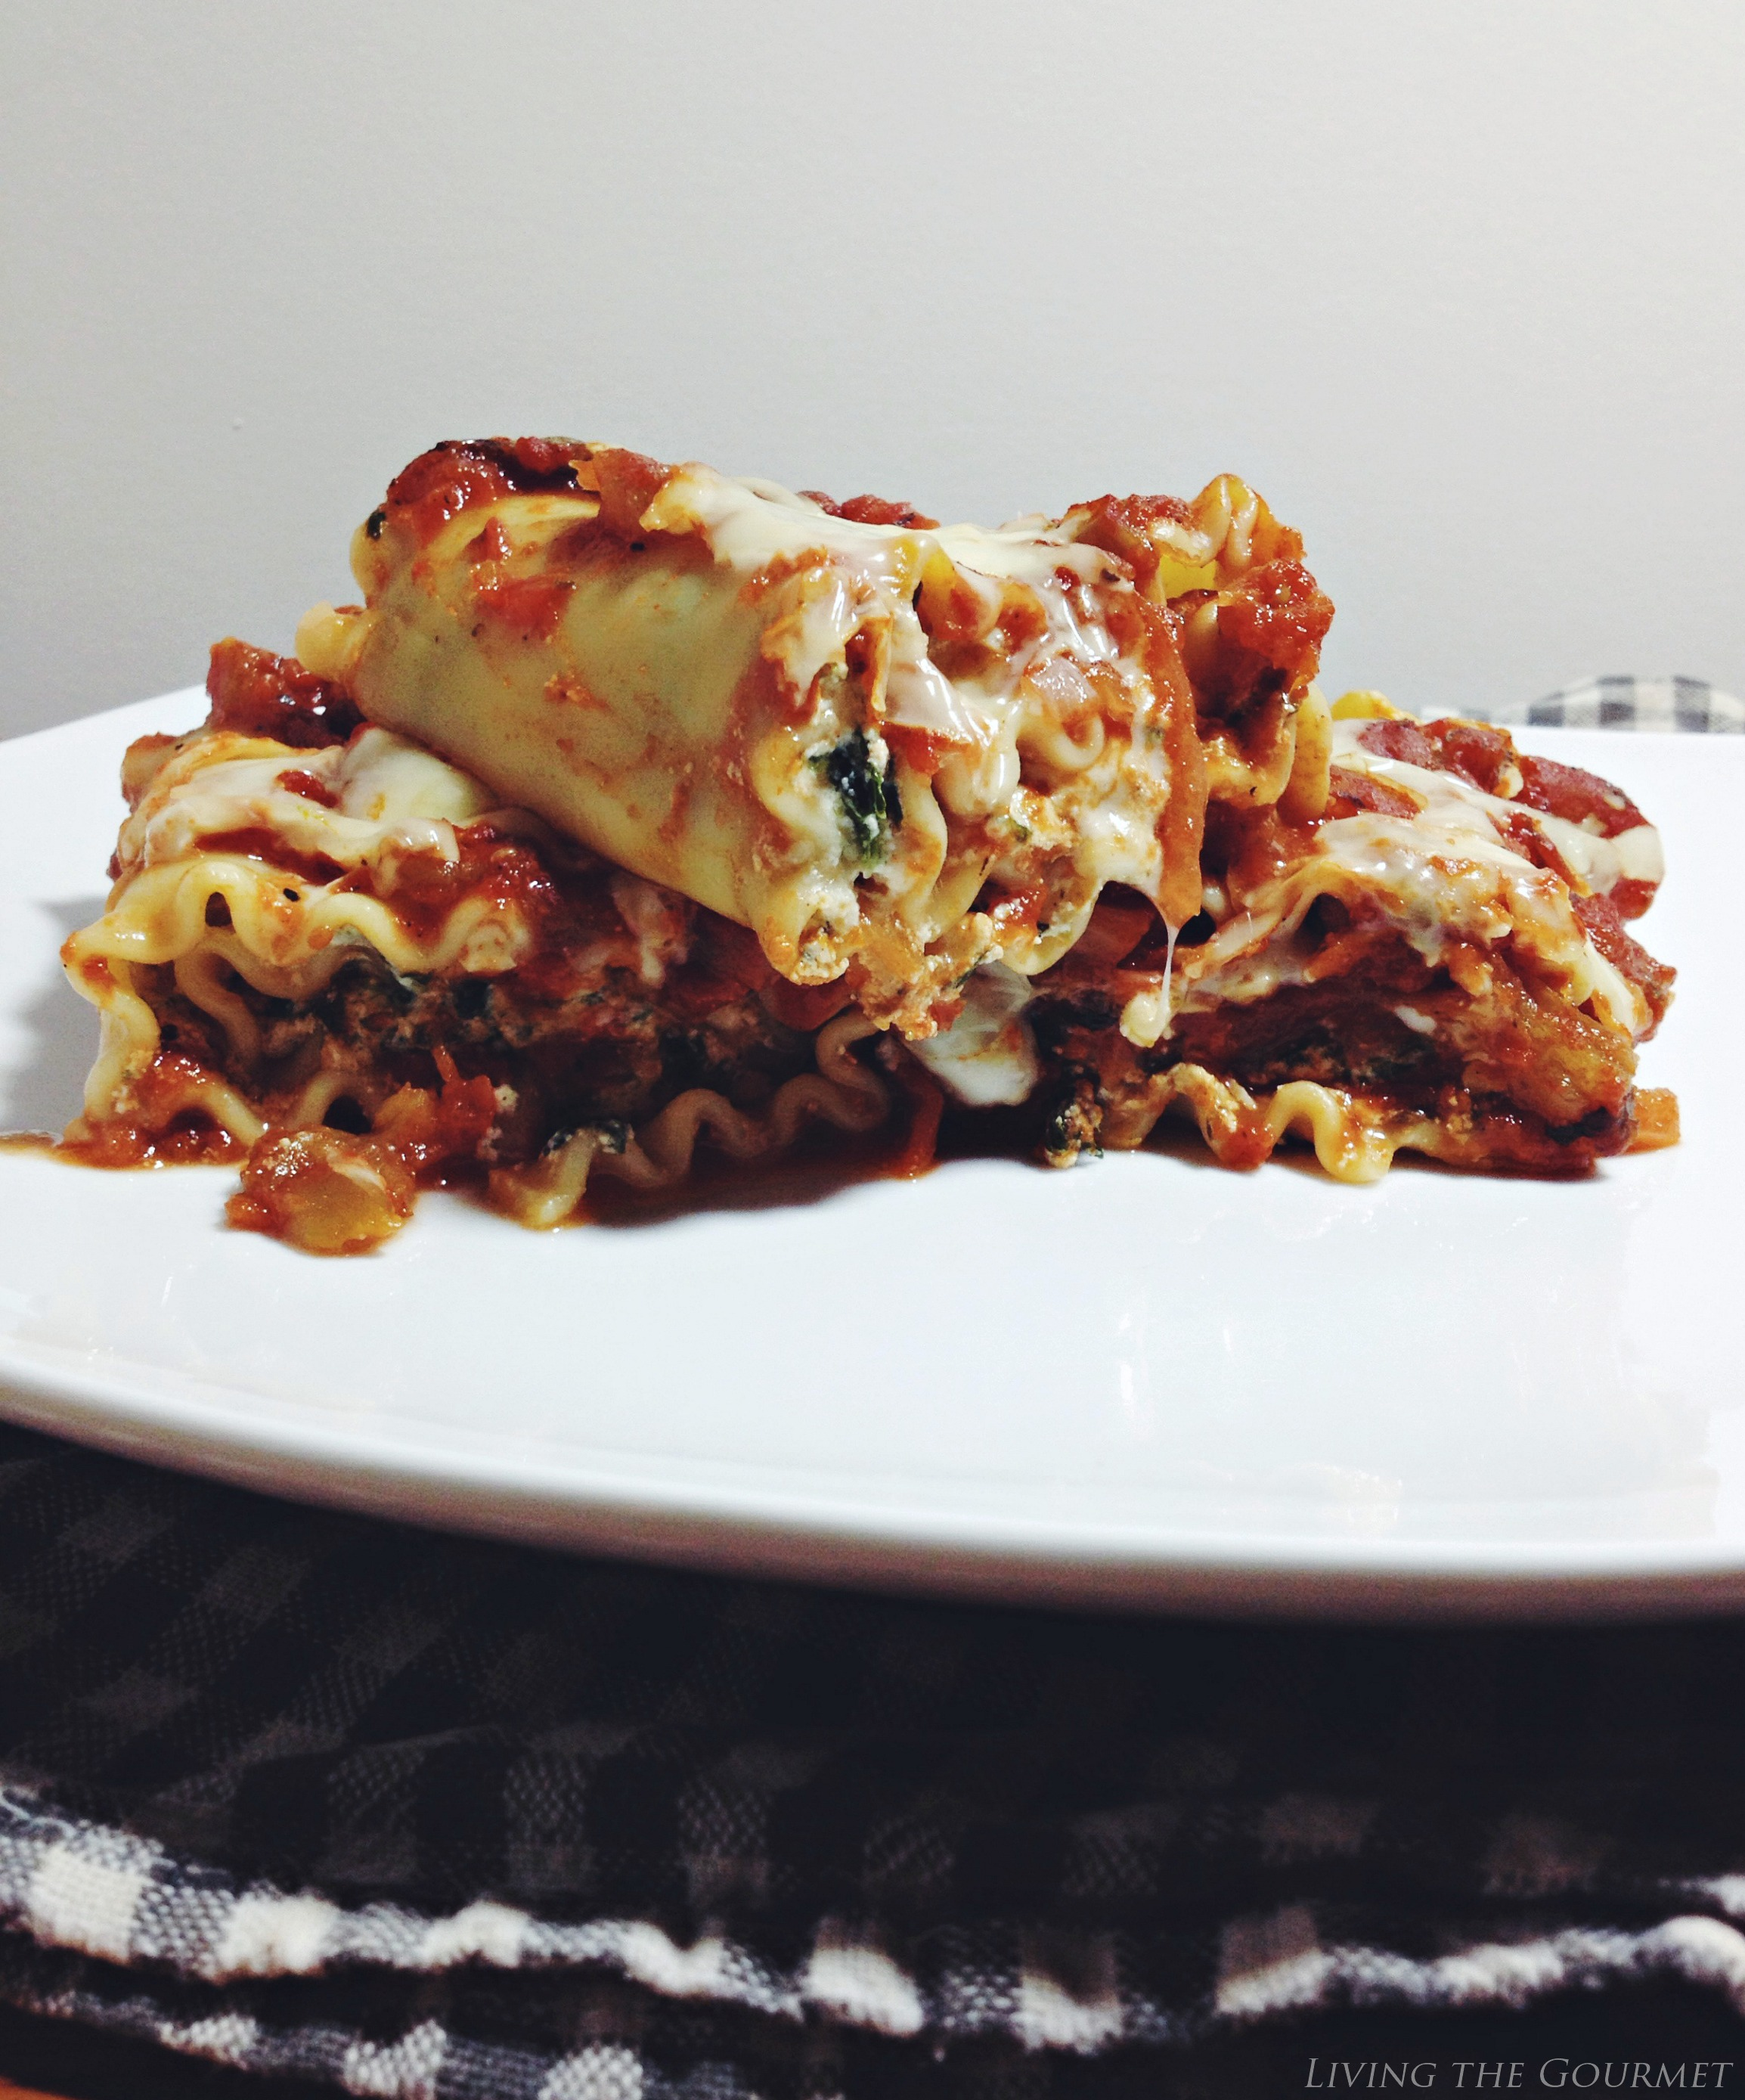 Living the Gourmet: Sweet Lasagna Roll-Ups